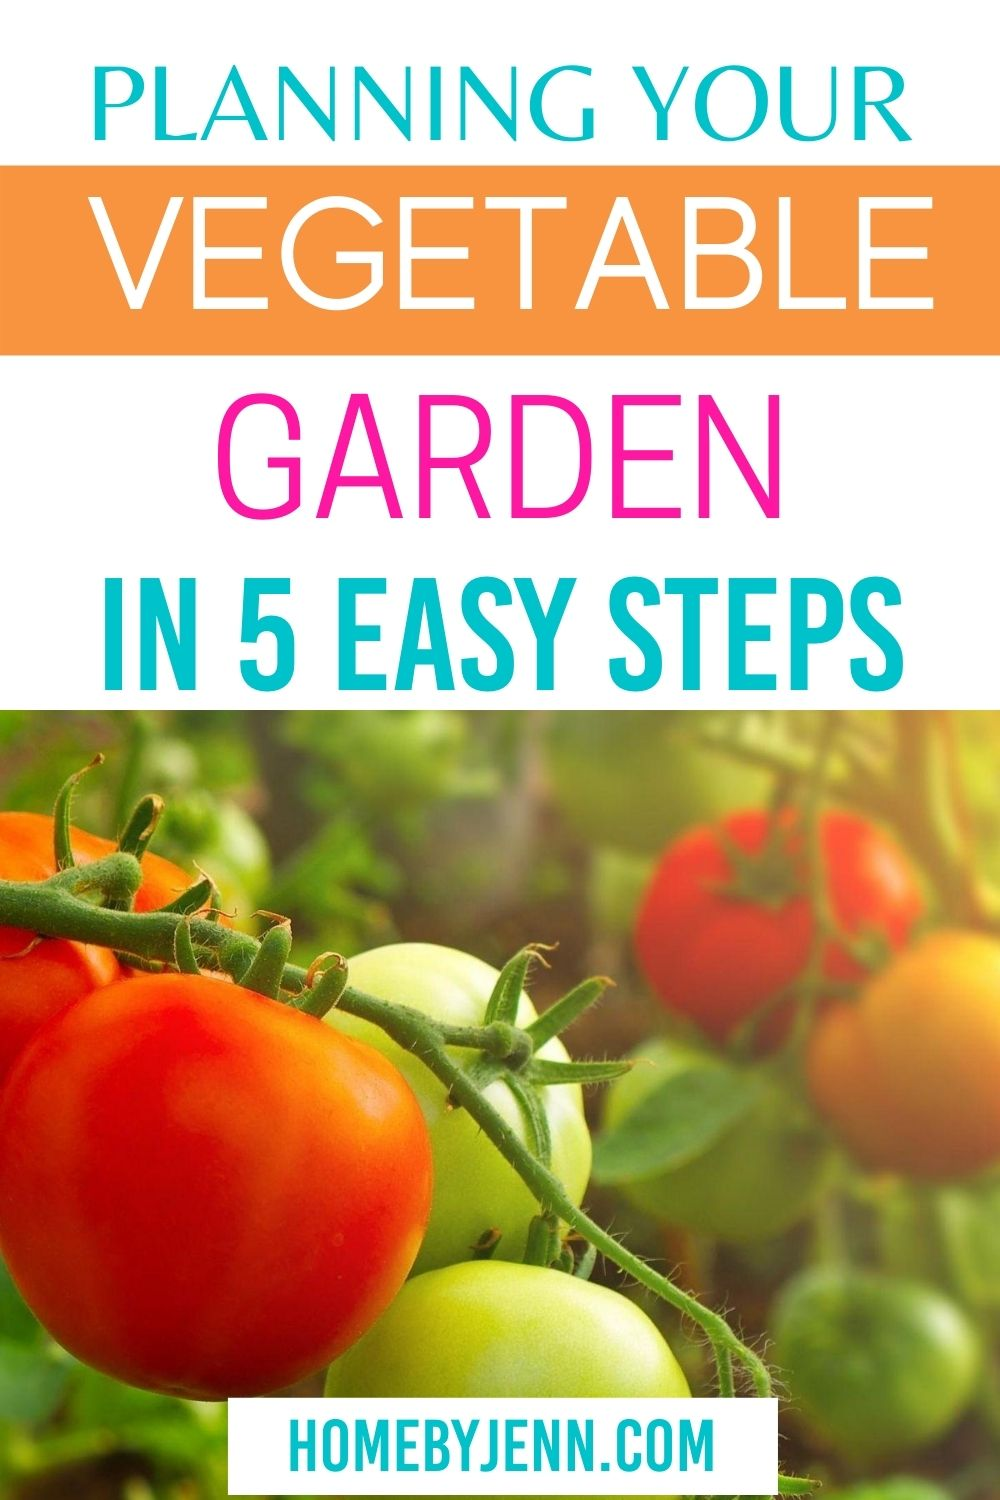 Plan out your square foot veggie garden in 5 simple steps. Take your garden to the next level with a free garden planner. #garden #veggiegarden #vegetablegarden #squarefoot #squarefootgarden via @homebyjenn